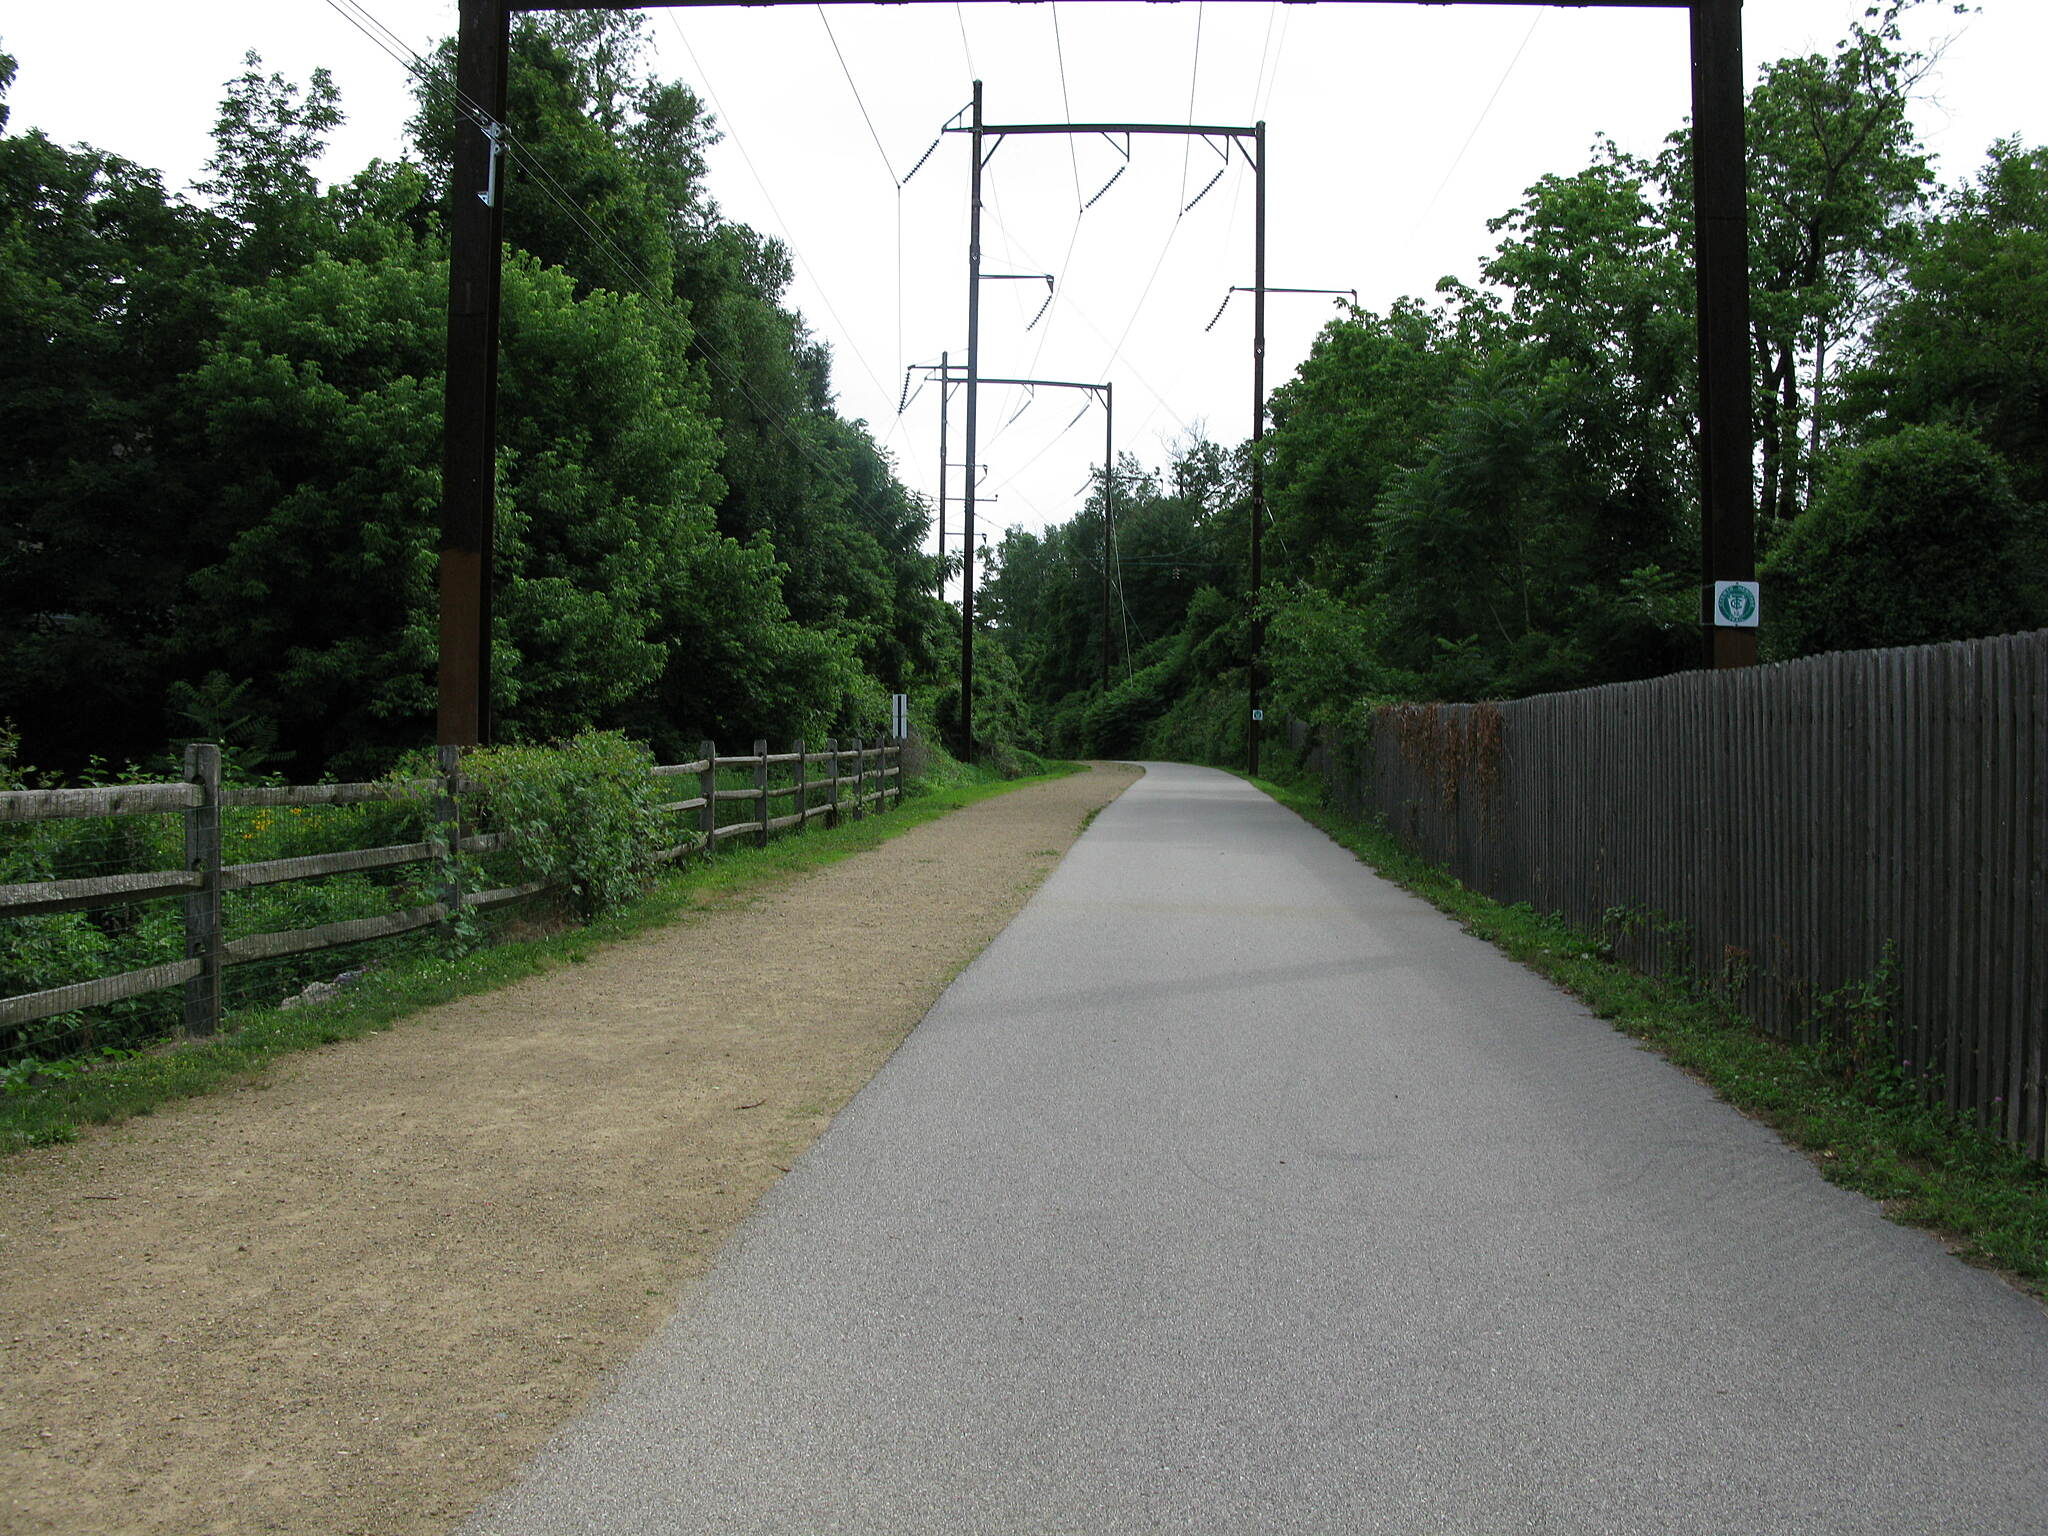 Cynwyd Heritage Trail Cynwyd Heritage Trail Asphalt and crushed stone pavements, seen side by side south of Lower Merion Twp. Park.